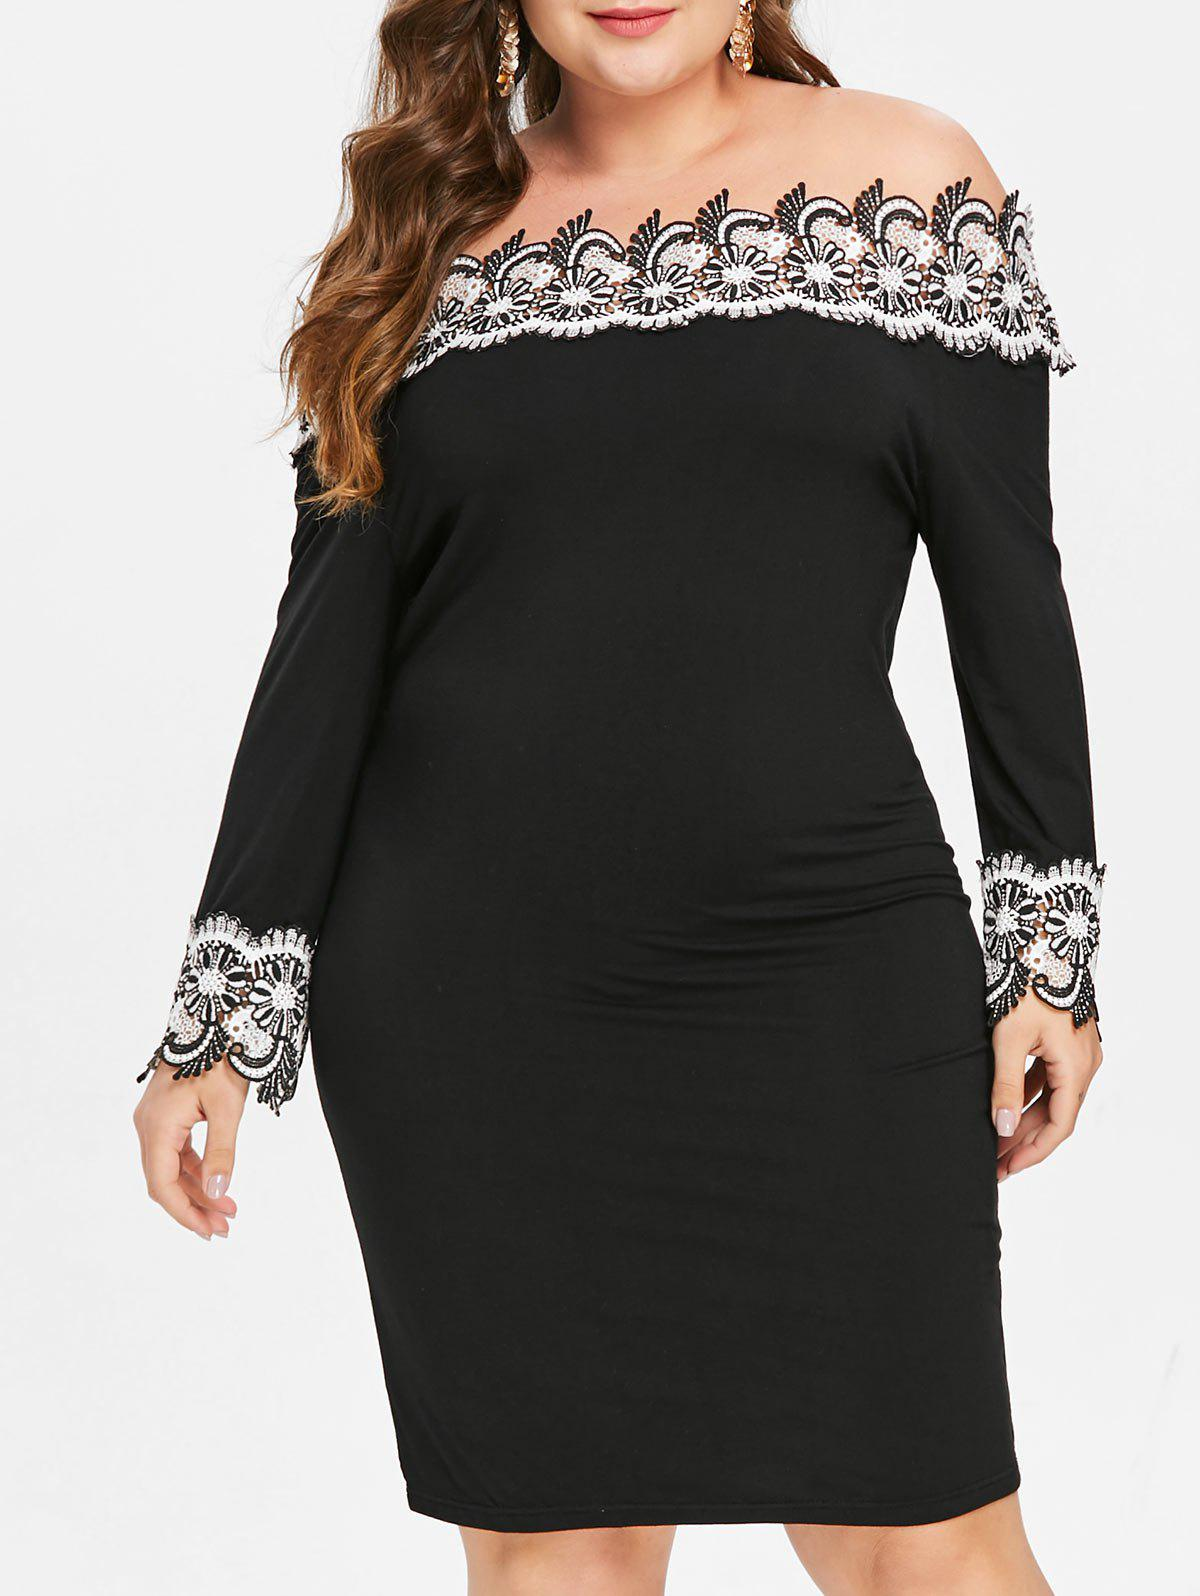 Plus Size Contrast Lace Mini Bodycon Dress - BLACK 5X